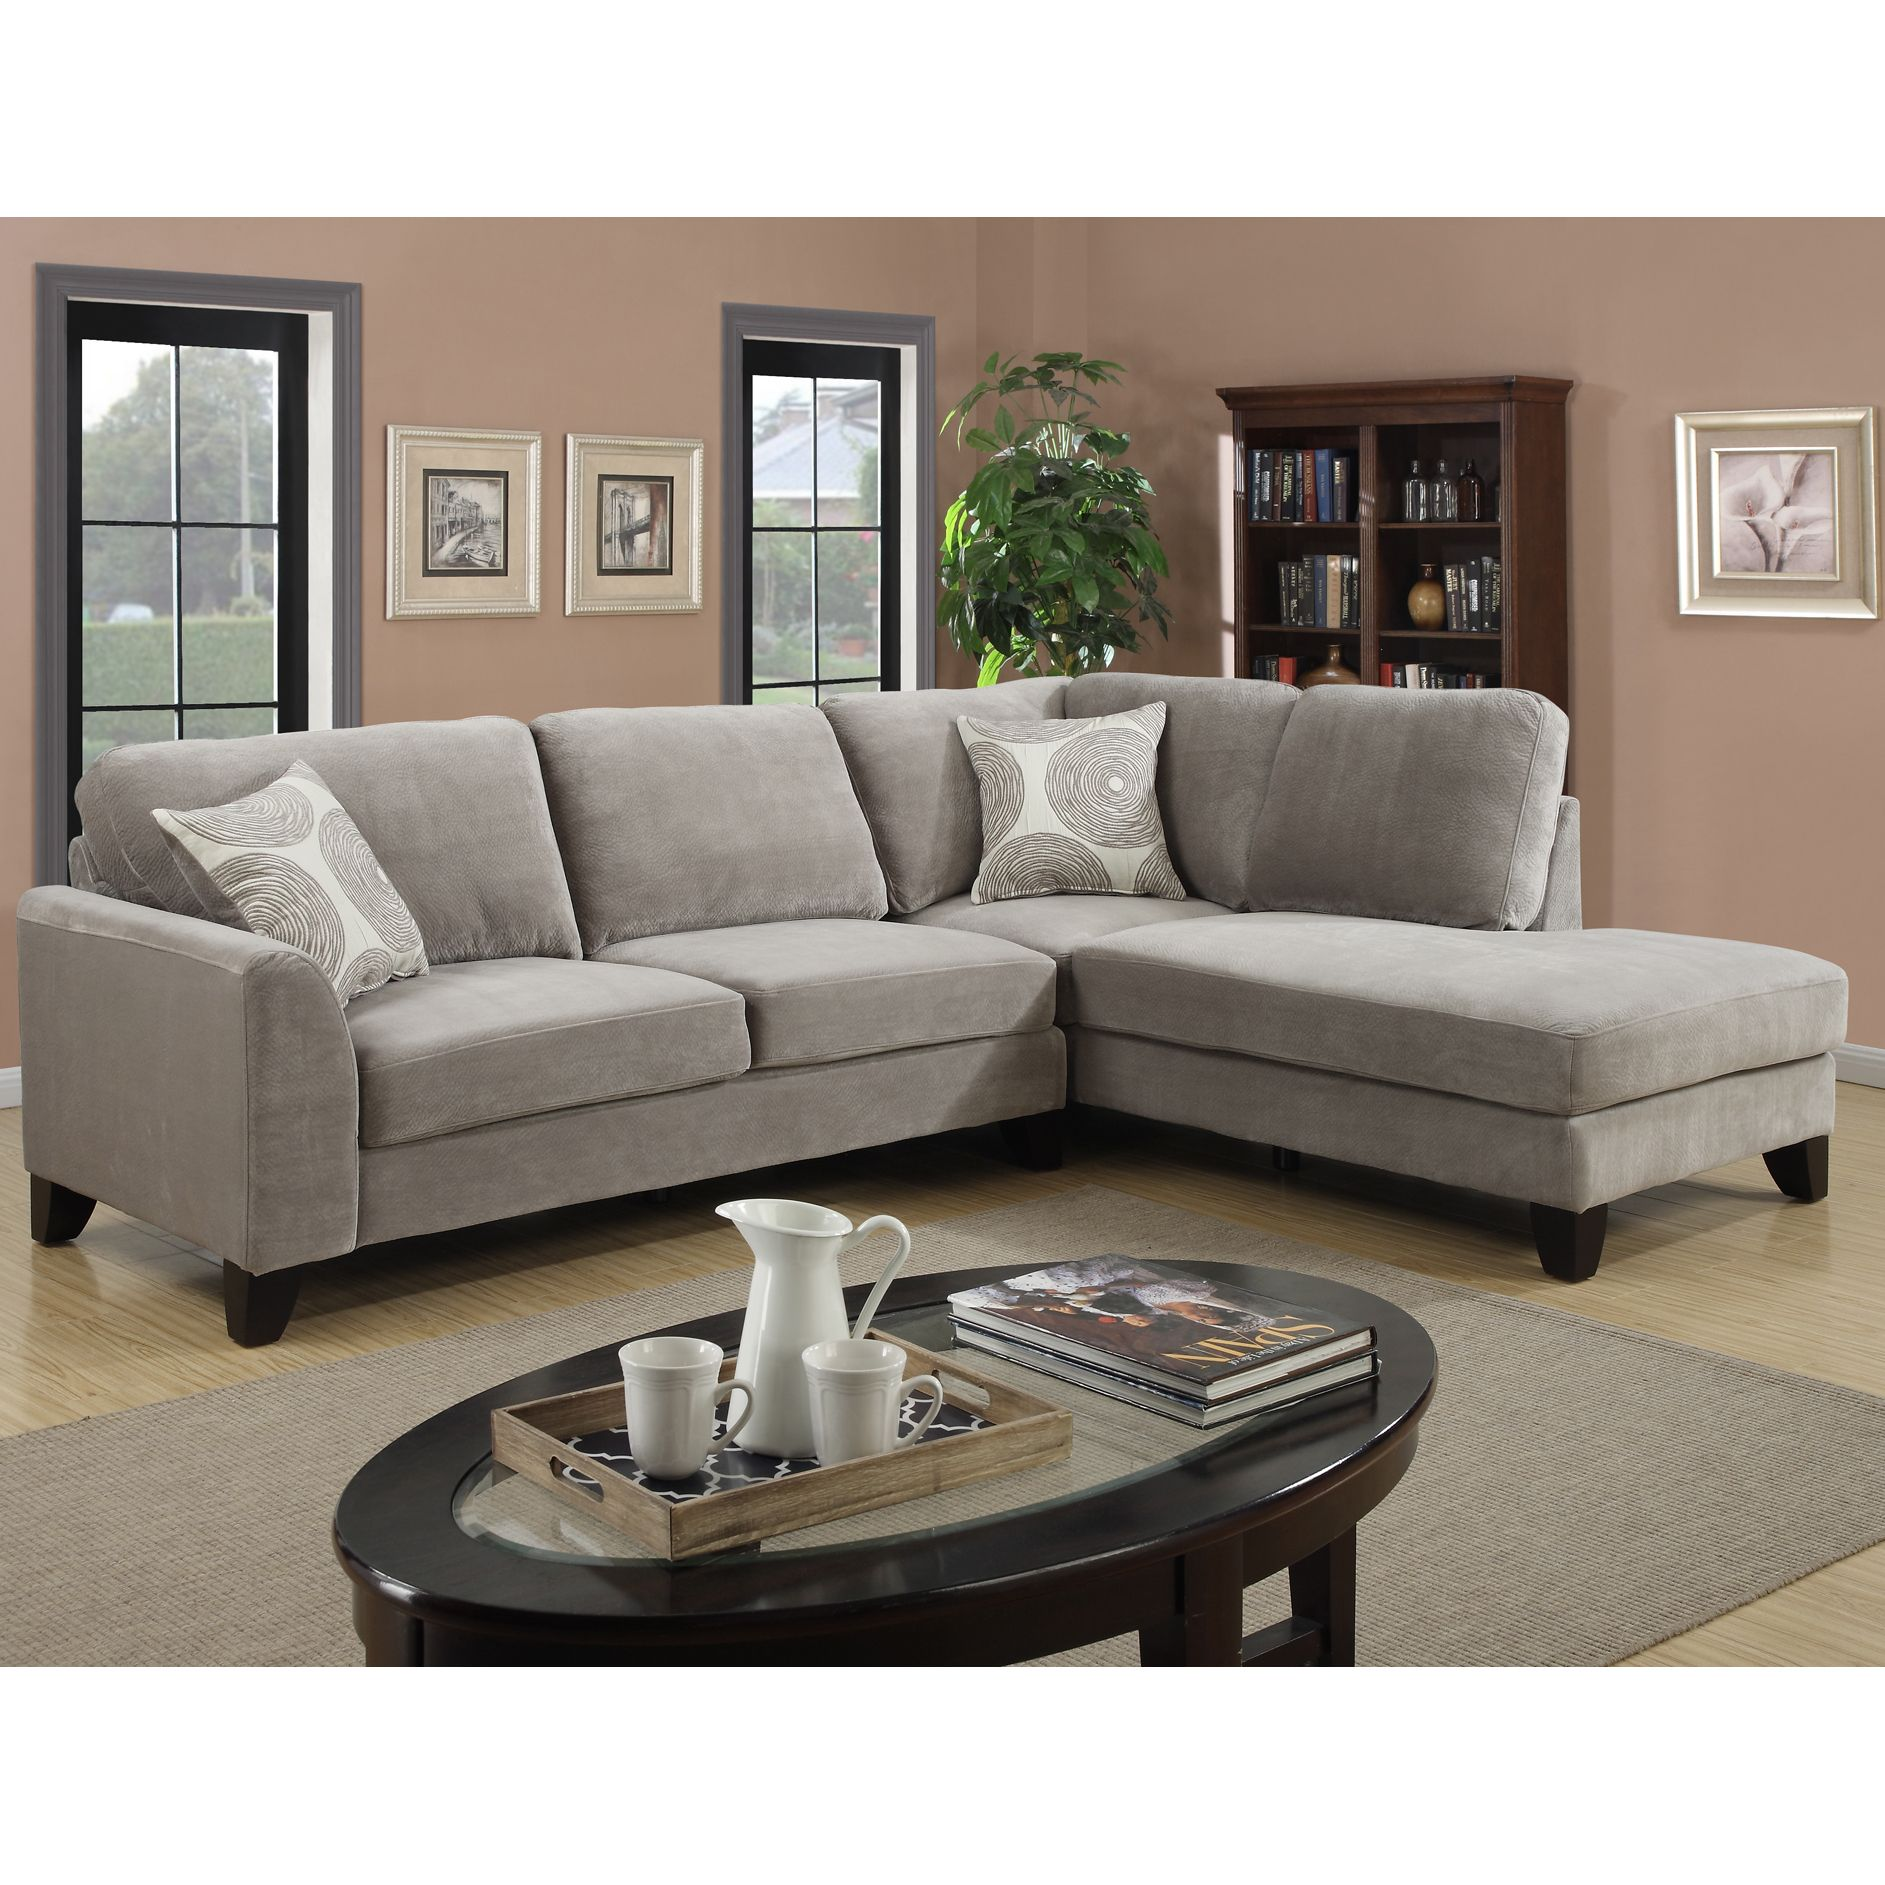 Porter Reese Dove Grey Sectional Sofa with Optional Ottoman by